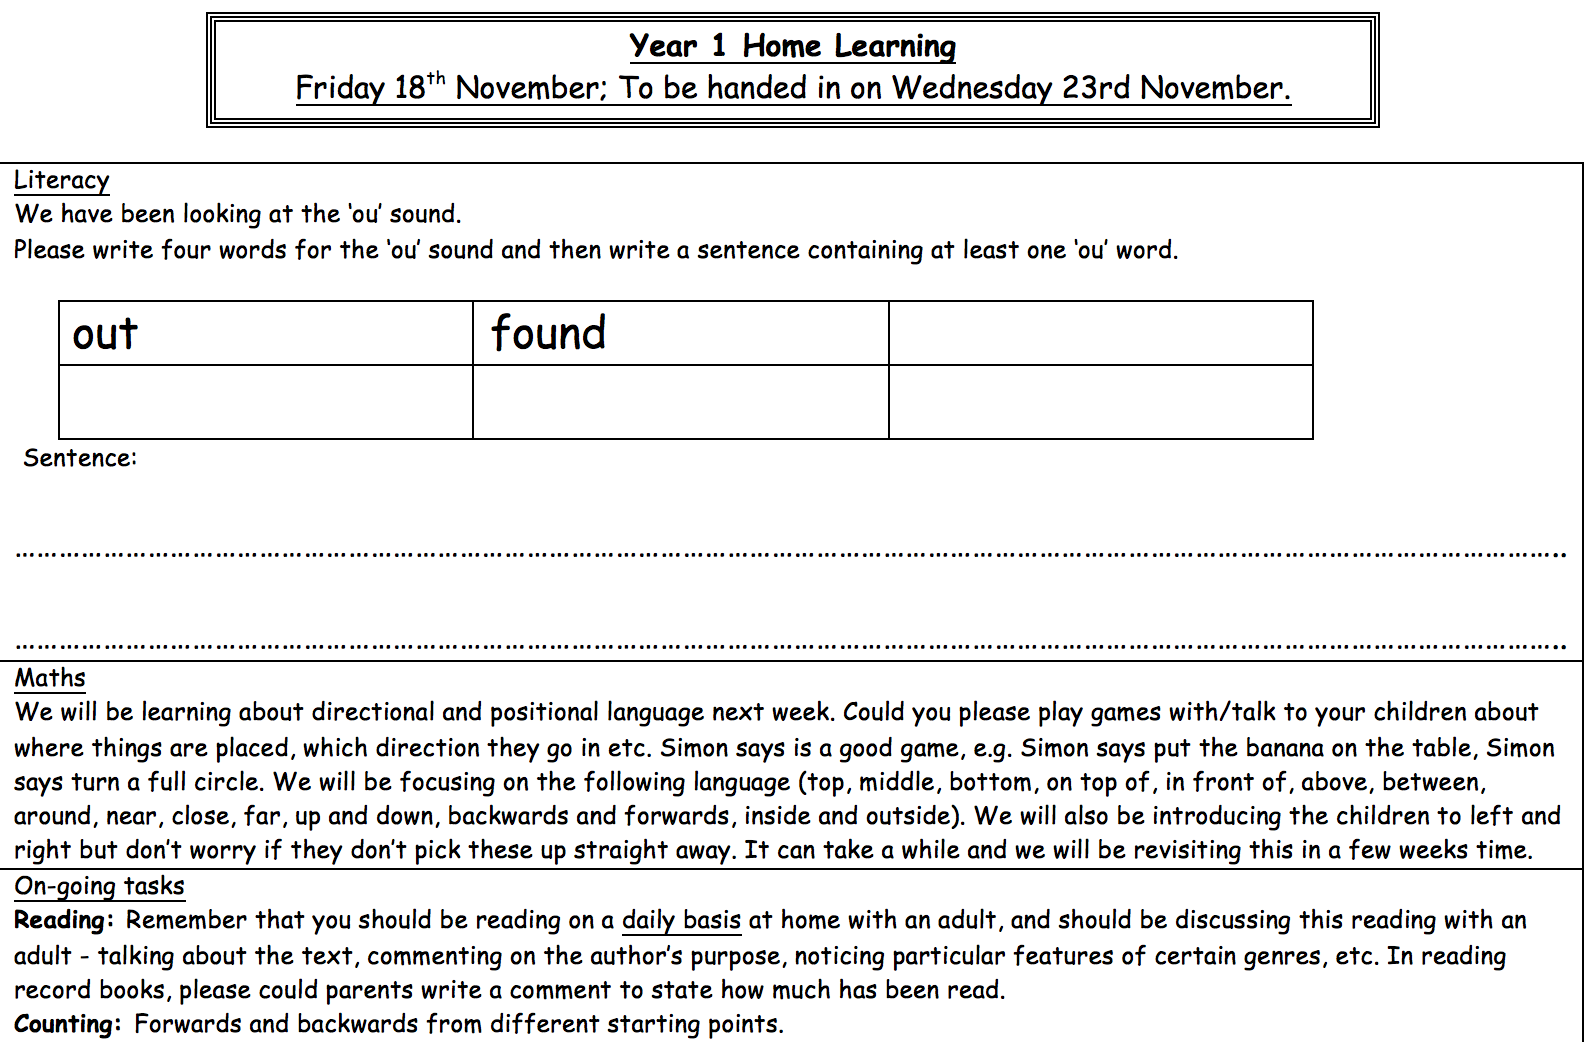 homelearning wk3